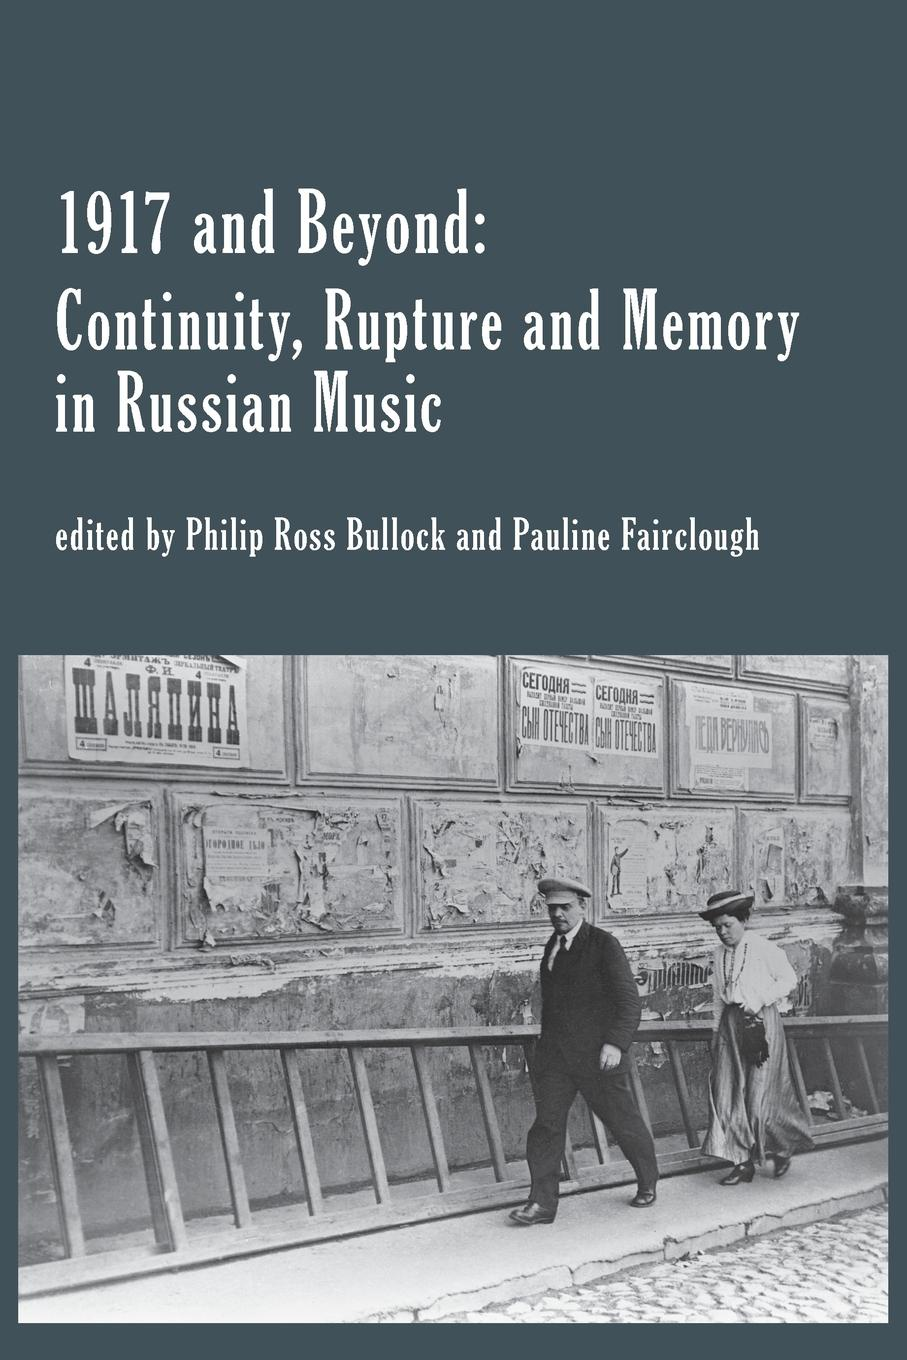 1917 and Beyond. Continuity, Rupture and Memory in Russian Music